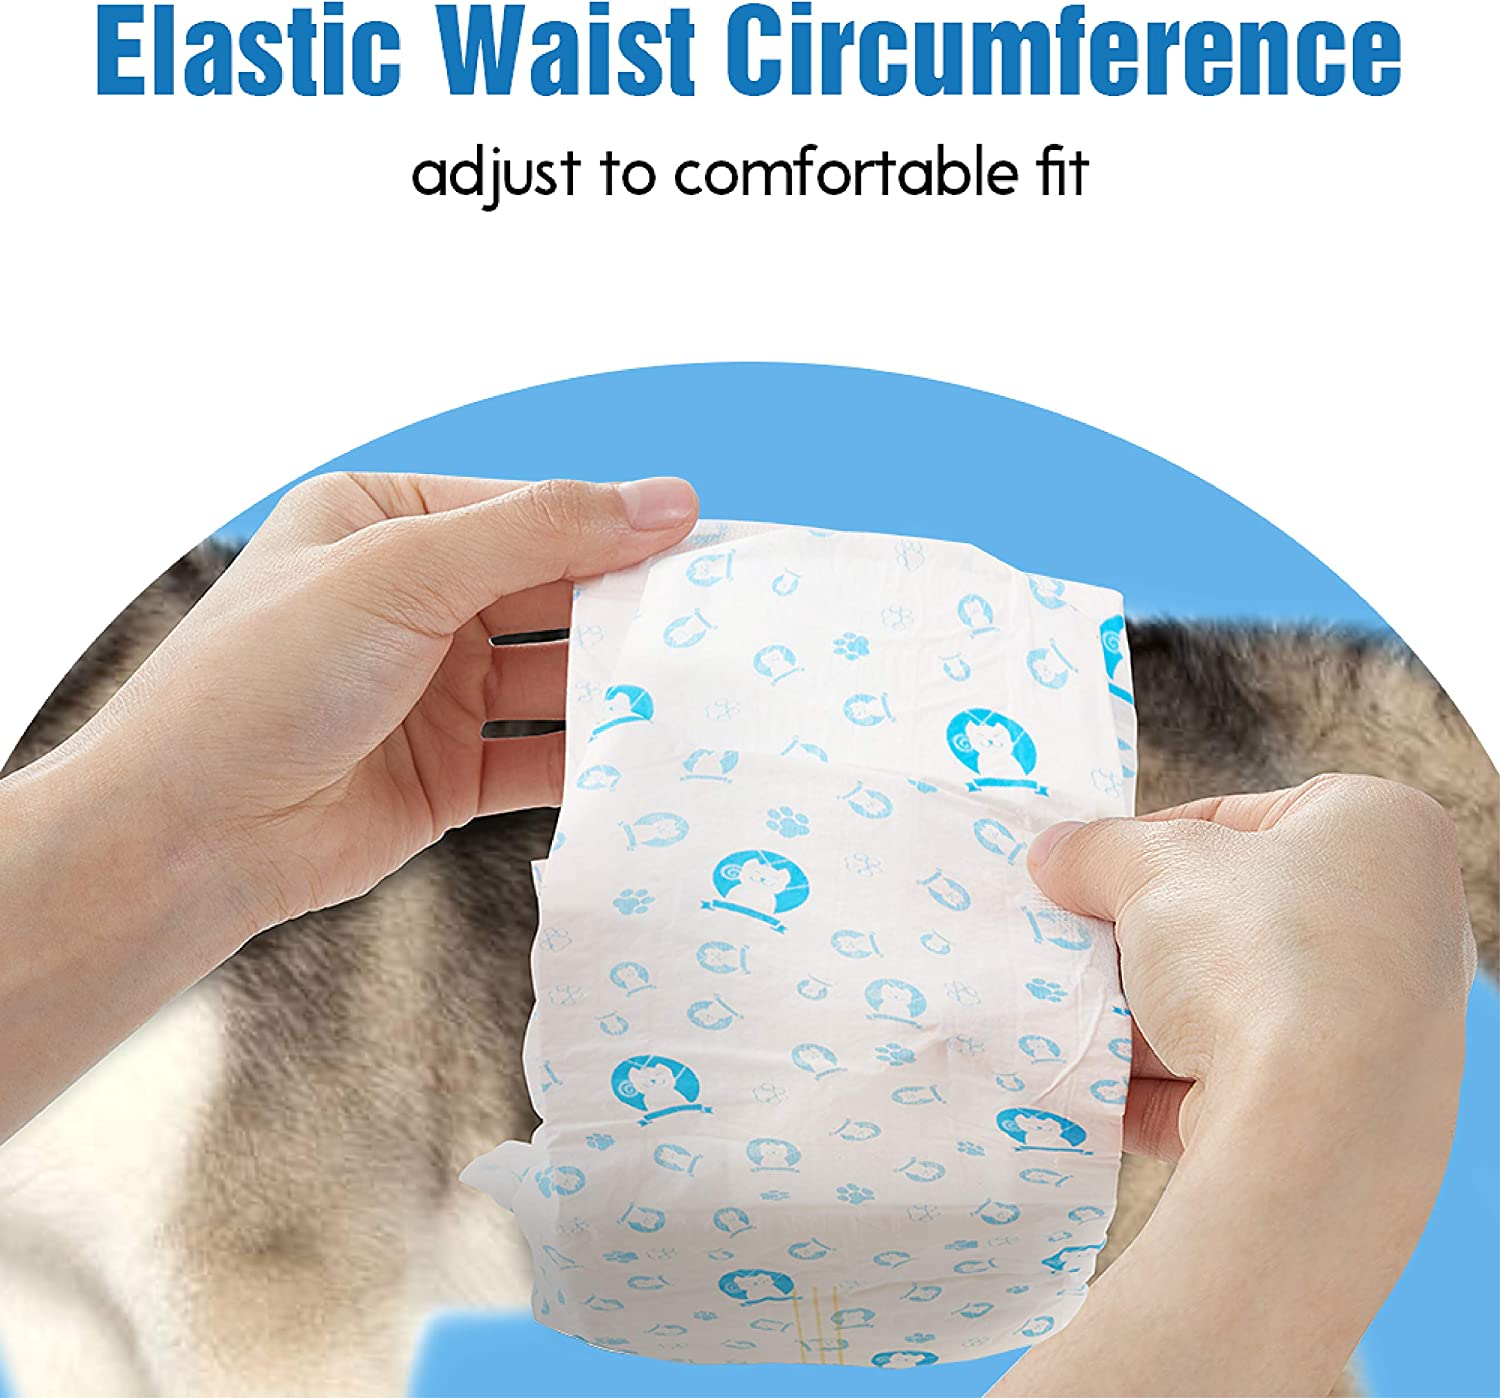 Excitable Urination or Incontinence ScratchMe Disposable Male Dog Diaper Small Super Absorbent and Leak-Proof Fit 40 Count